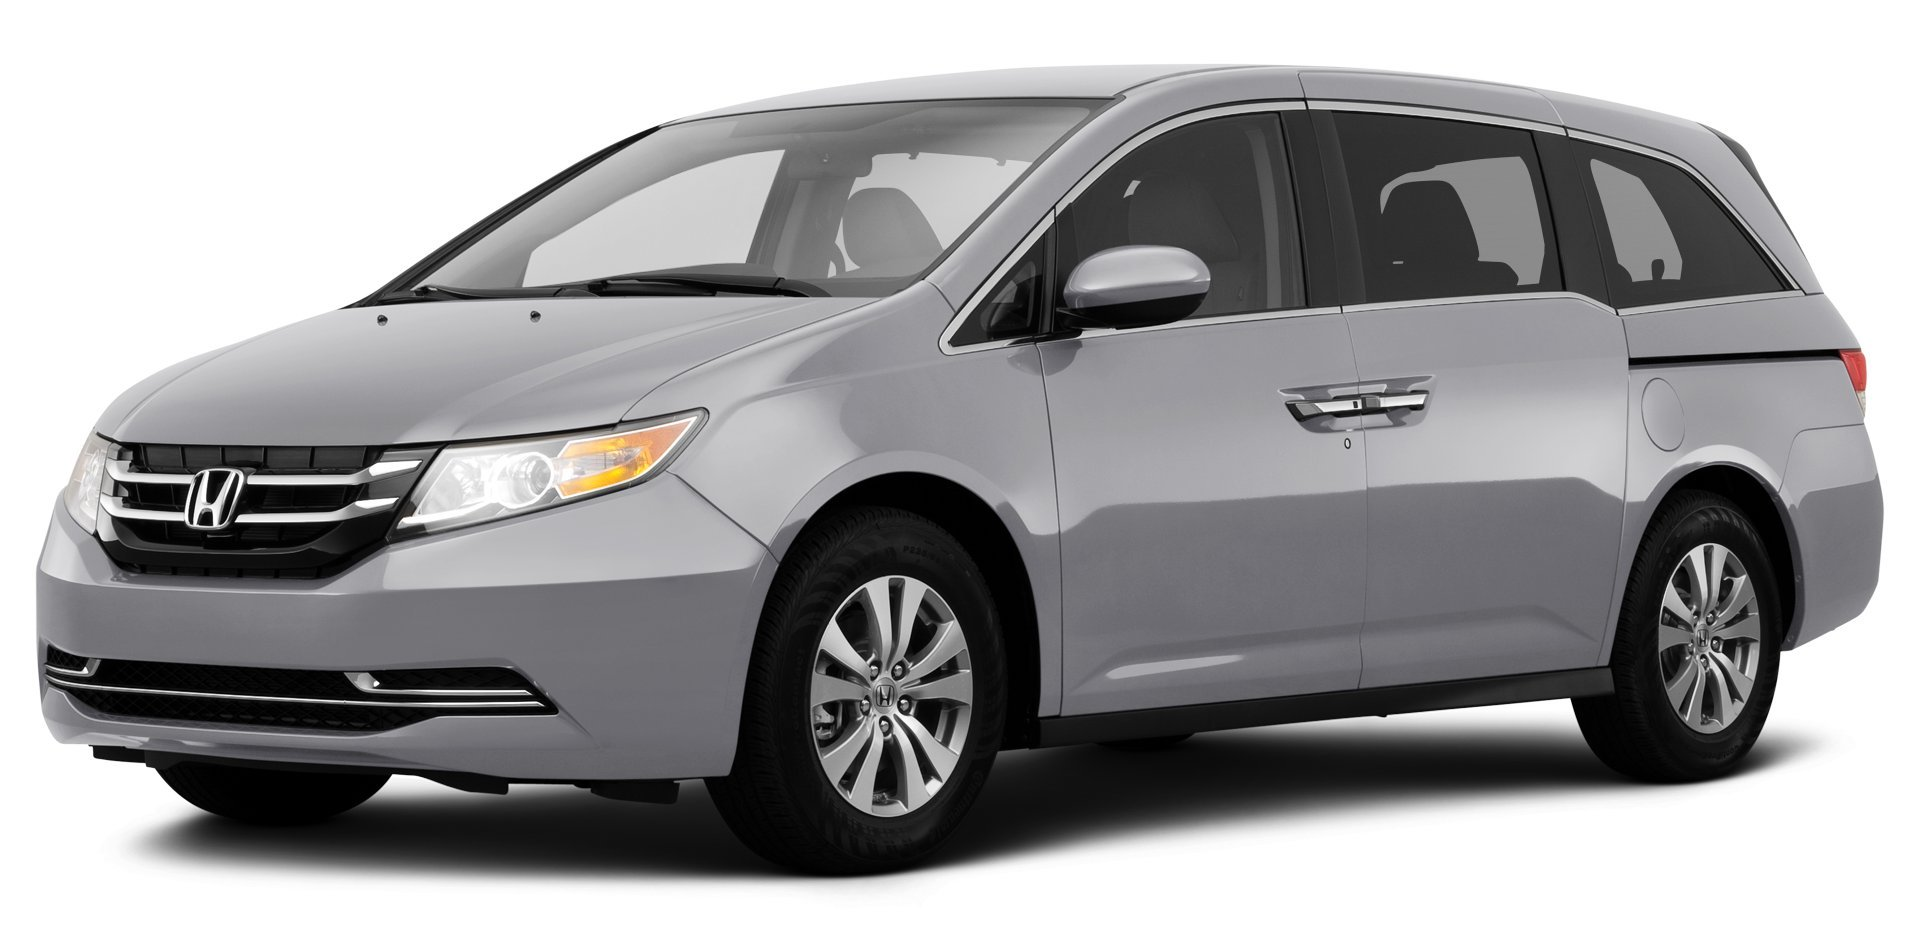 2015 honda odyssey reviews images and specs vehicles. Black Bedroom Furniture Sets. Home Design Ideas